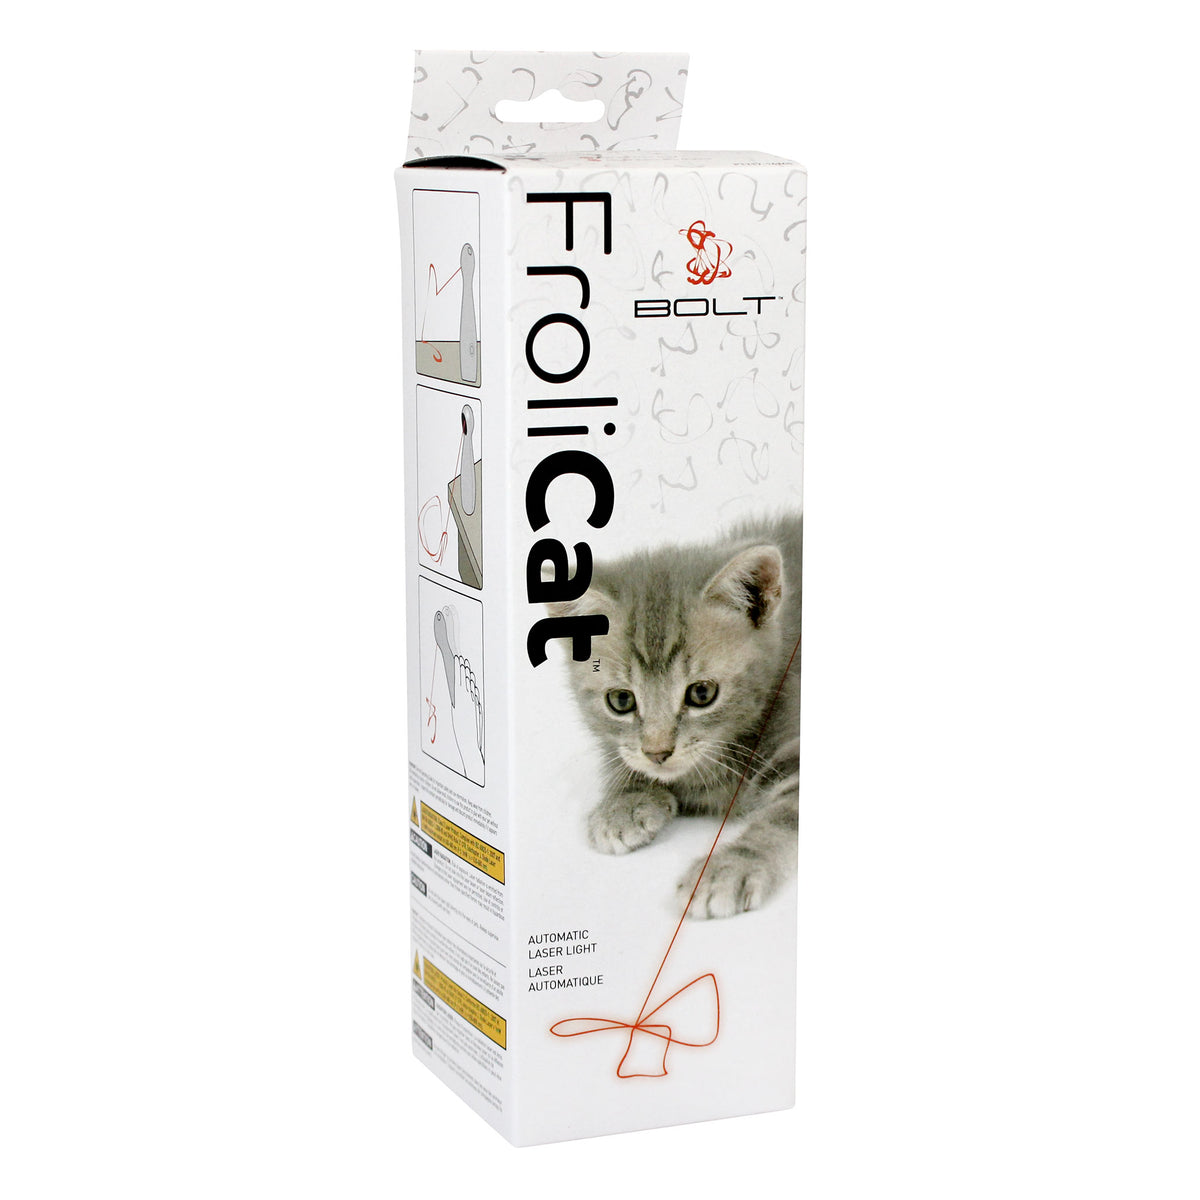 FroliCat Bolt Automatic Laser Cat Toy